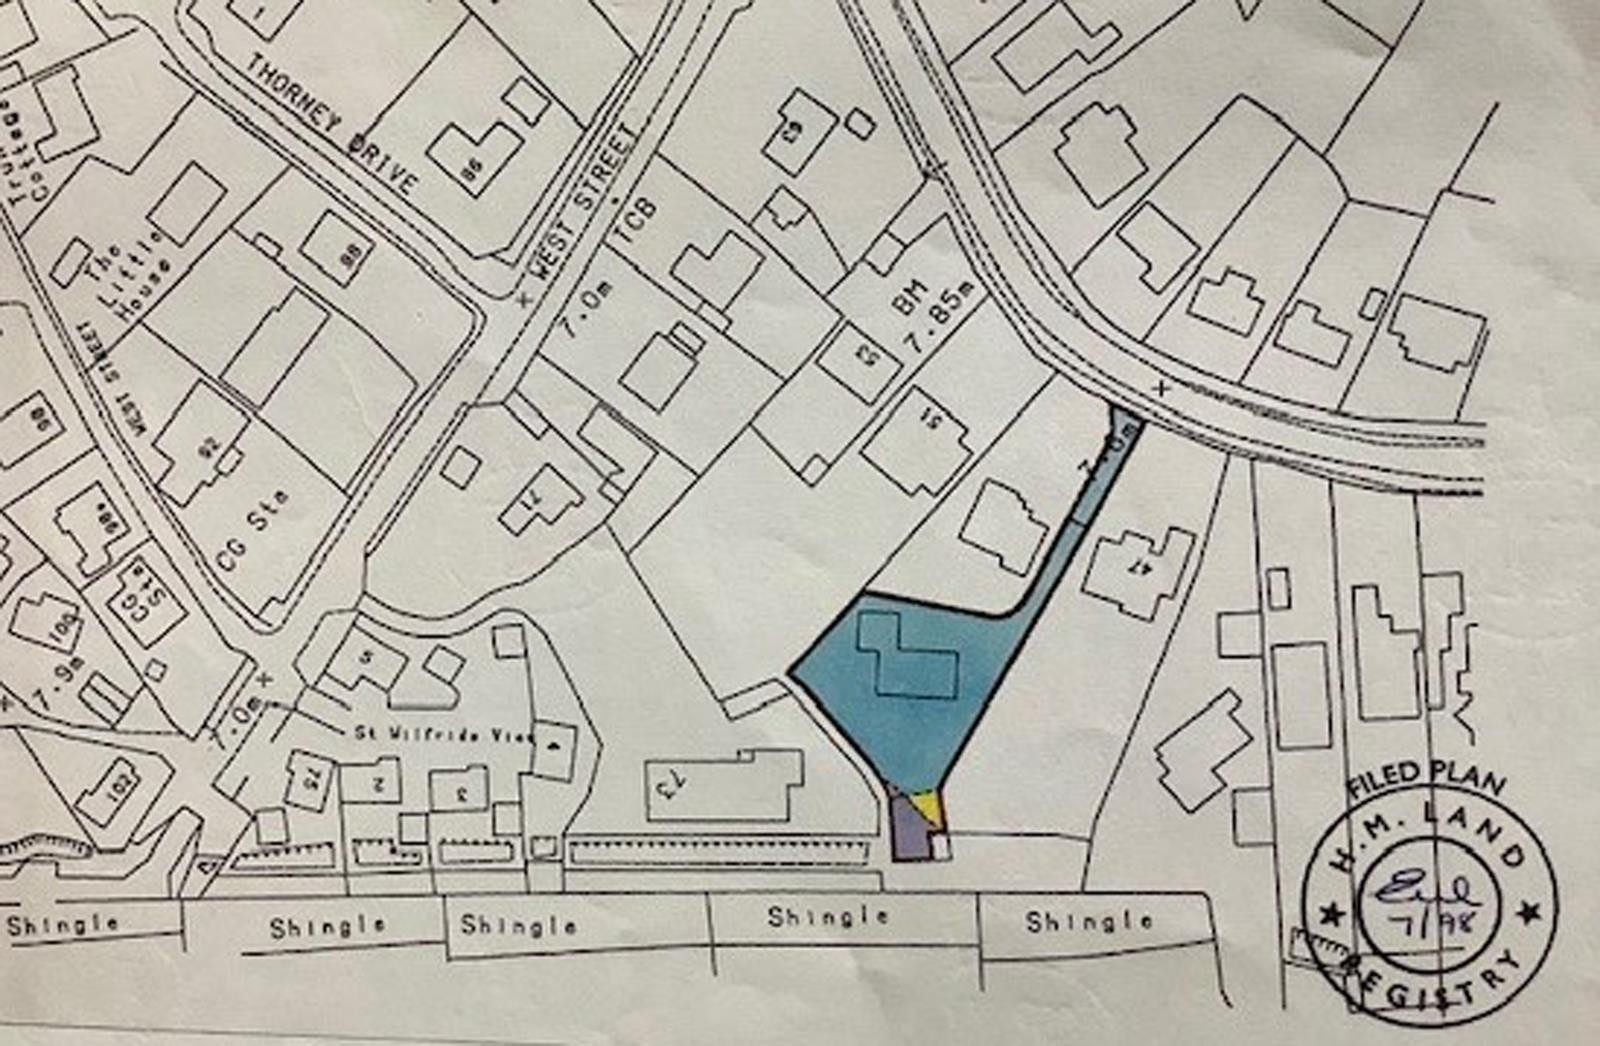 Title plan showing the plot/boundary